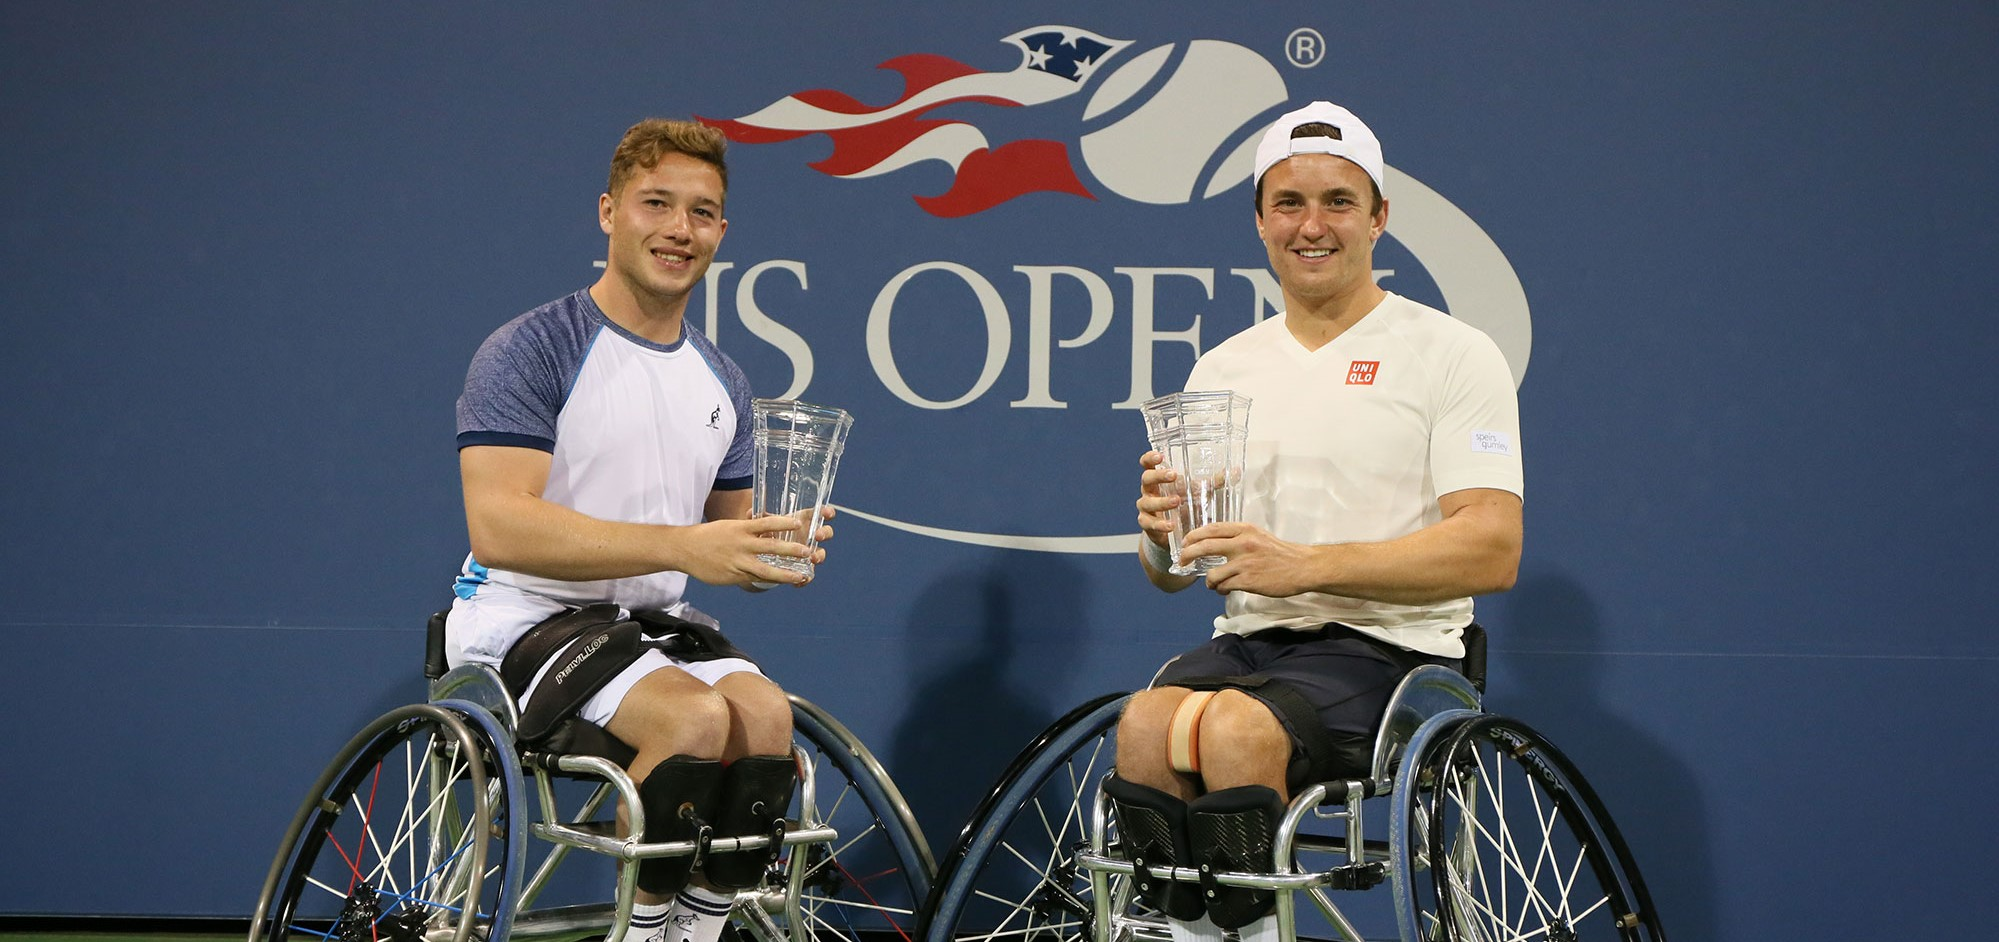 Sensational Saturday for Brits with Wins at US Open Wheelchair Tennis